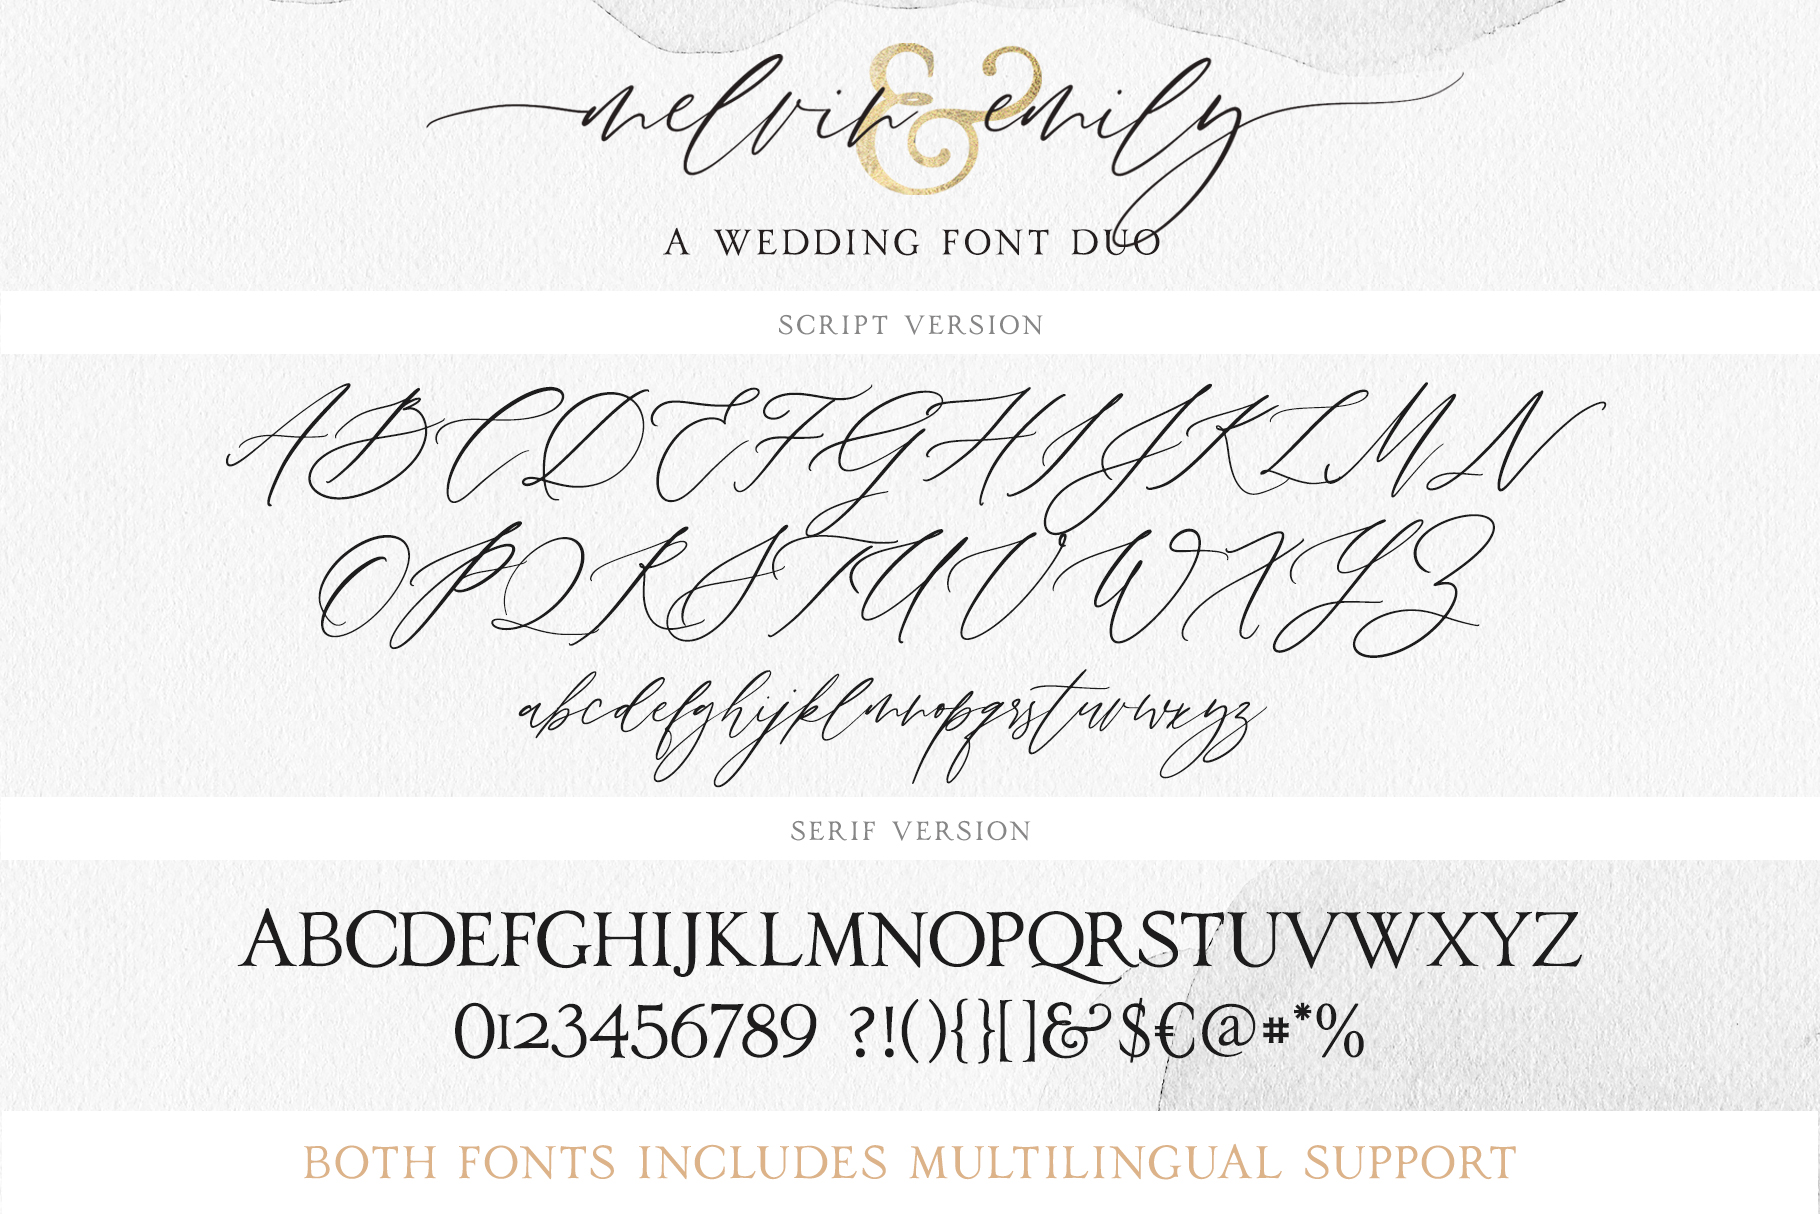 Melvin and Emily Font Duo example image 7